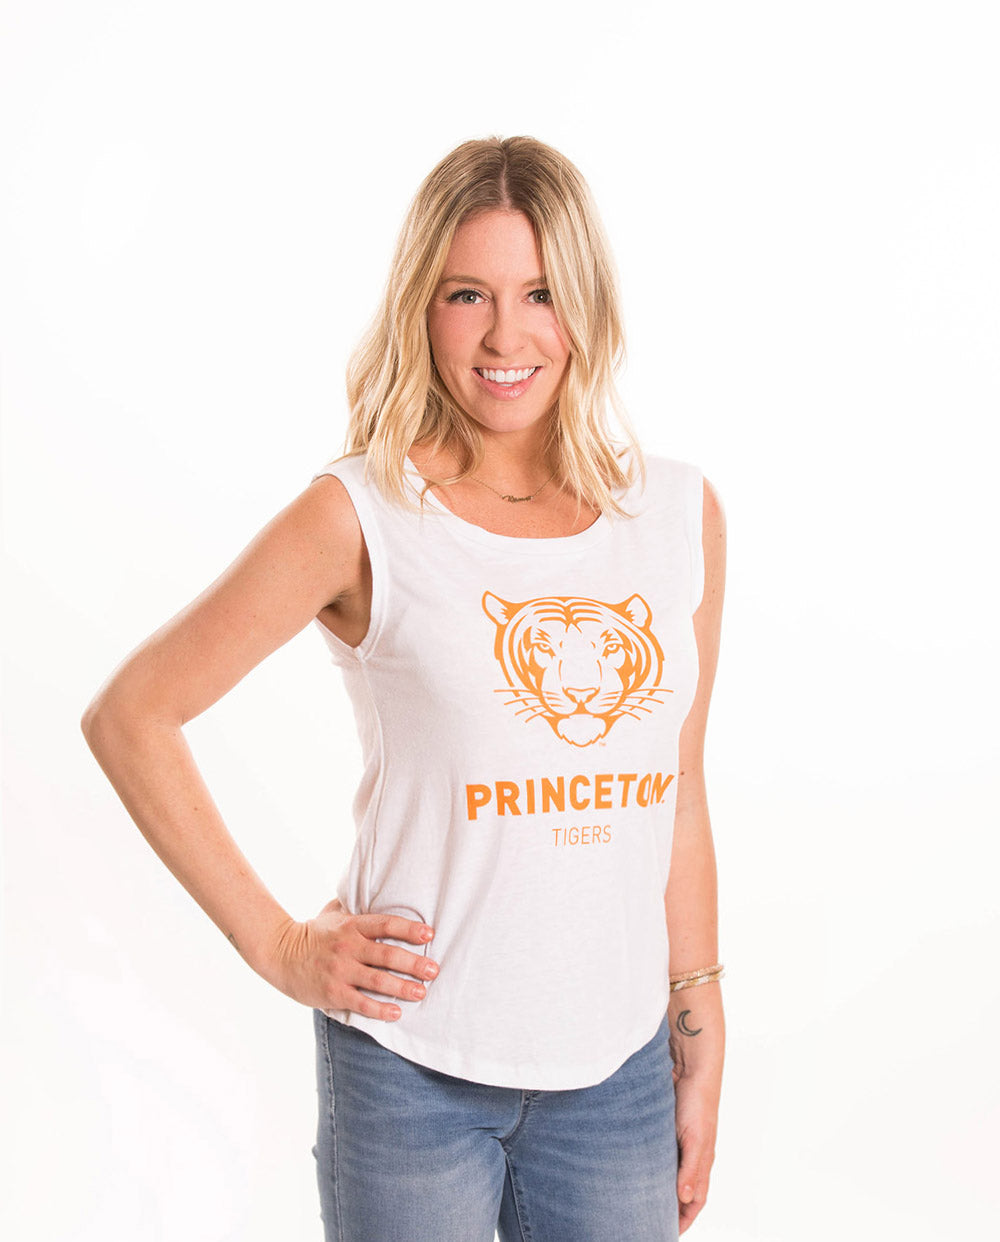 PRINCETON UNIVERSITY Tigers Women's Muscle Tank